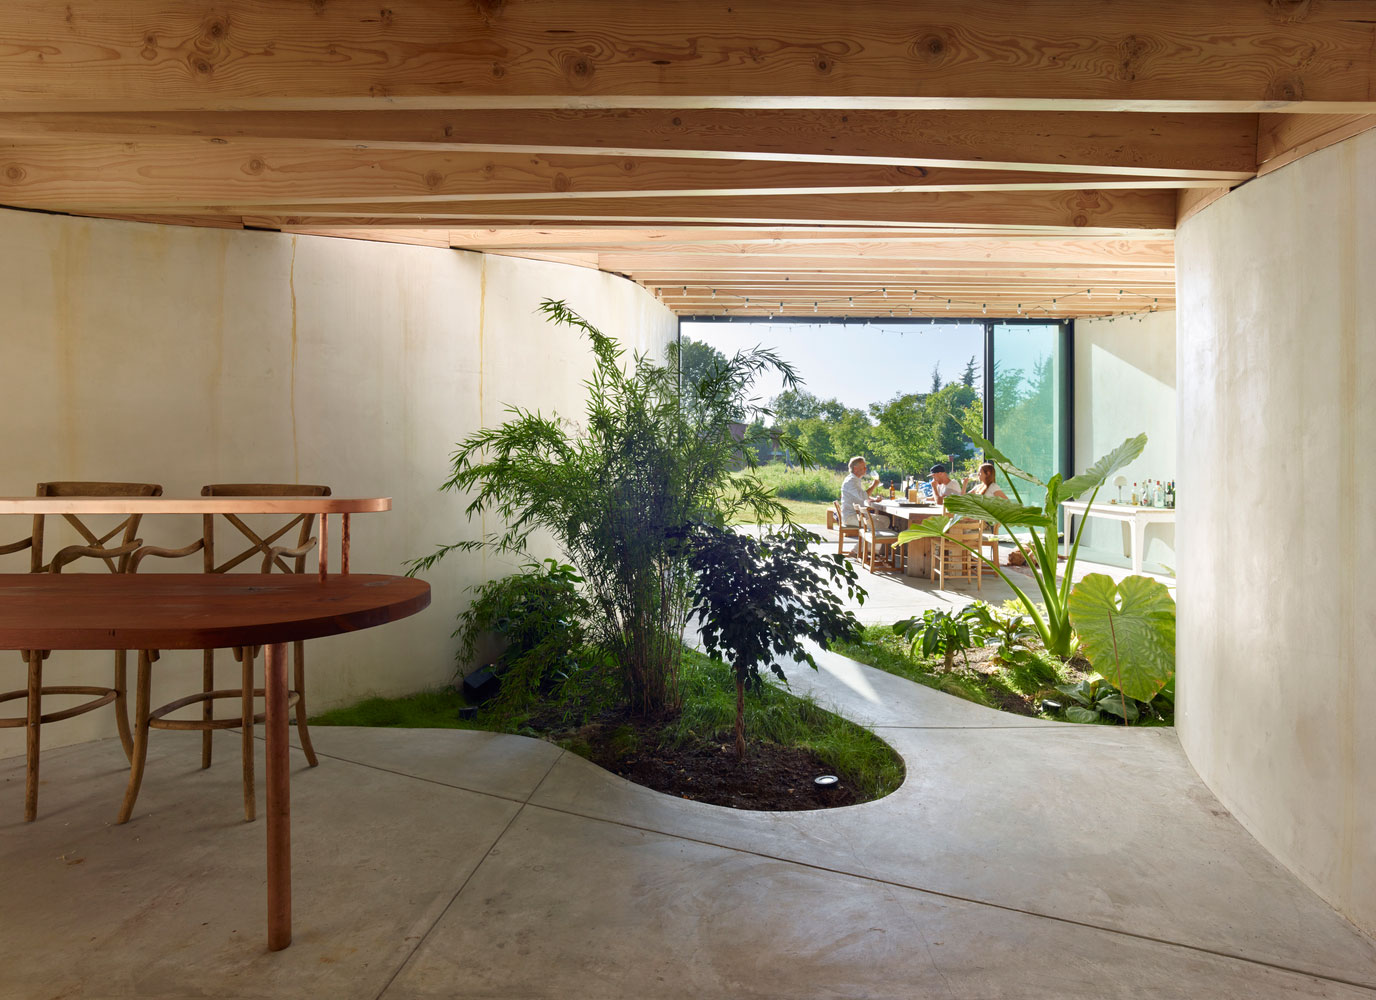 Luscious Artist Studio in Sonoma with Indoor Garden by Mork-Ulnes Architects | Yellowtrace